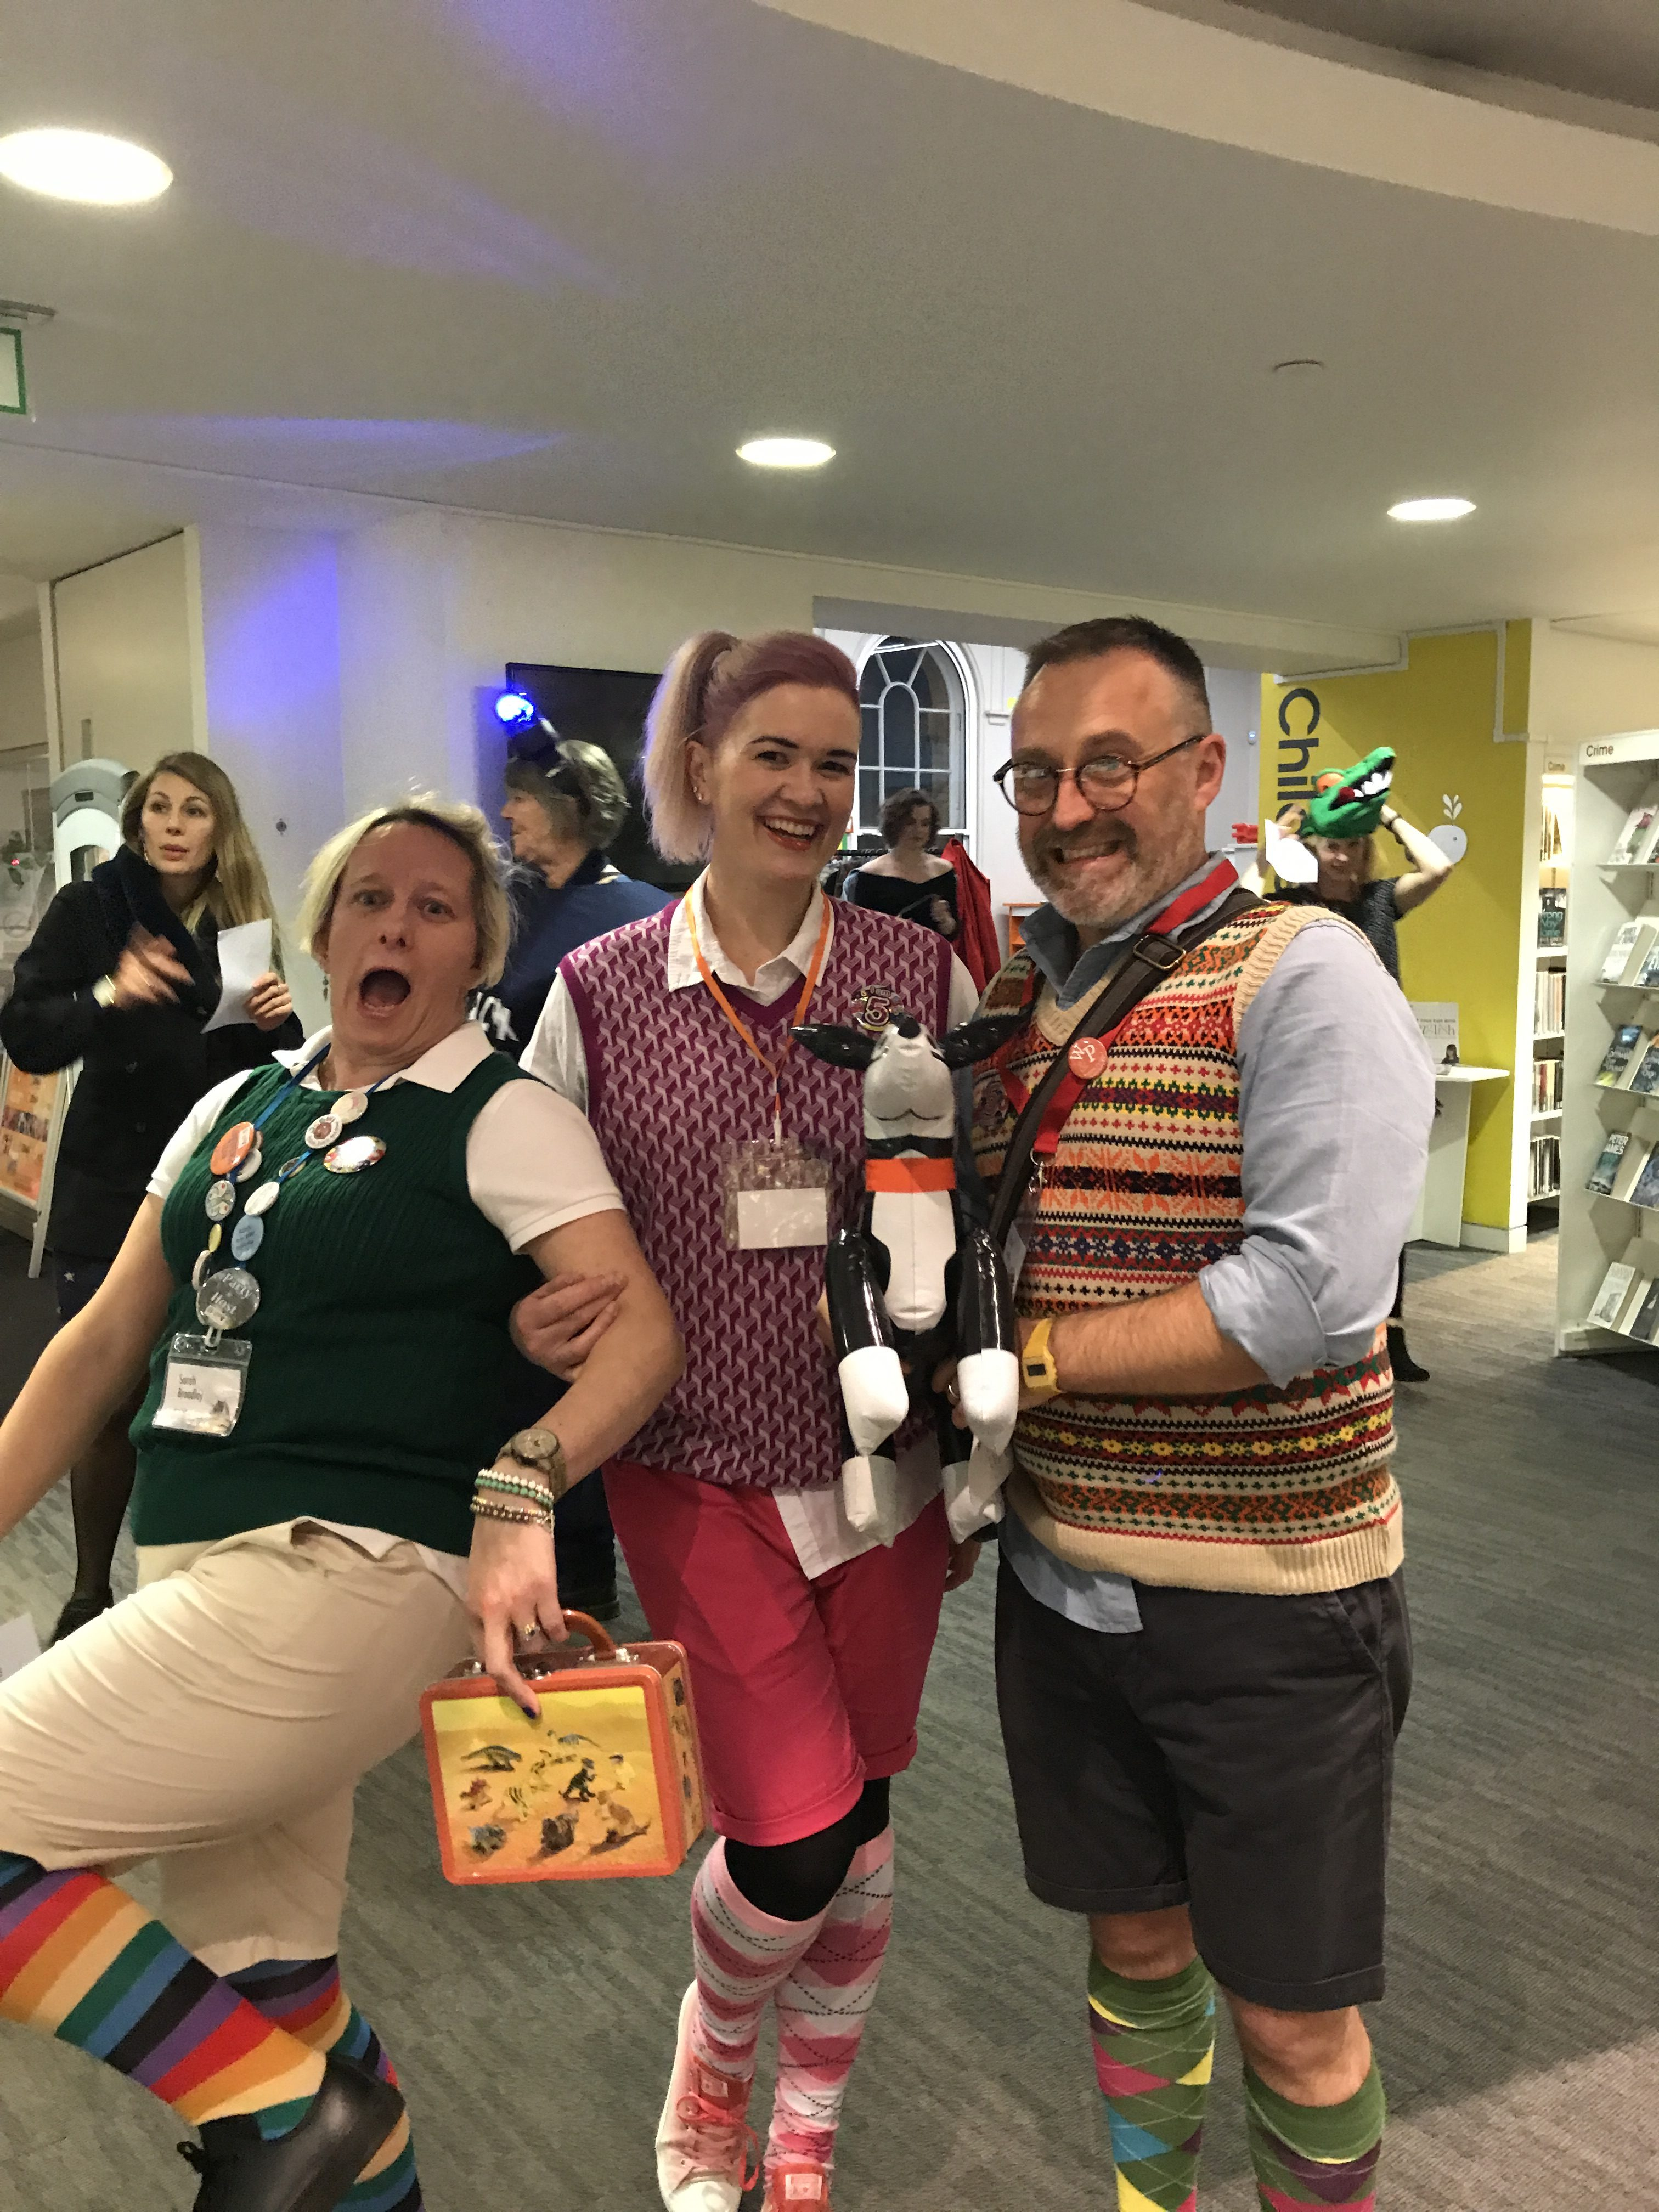 SCBWI Party 2